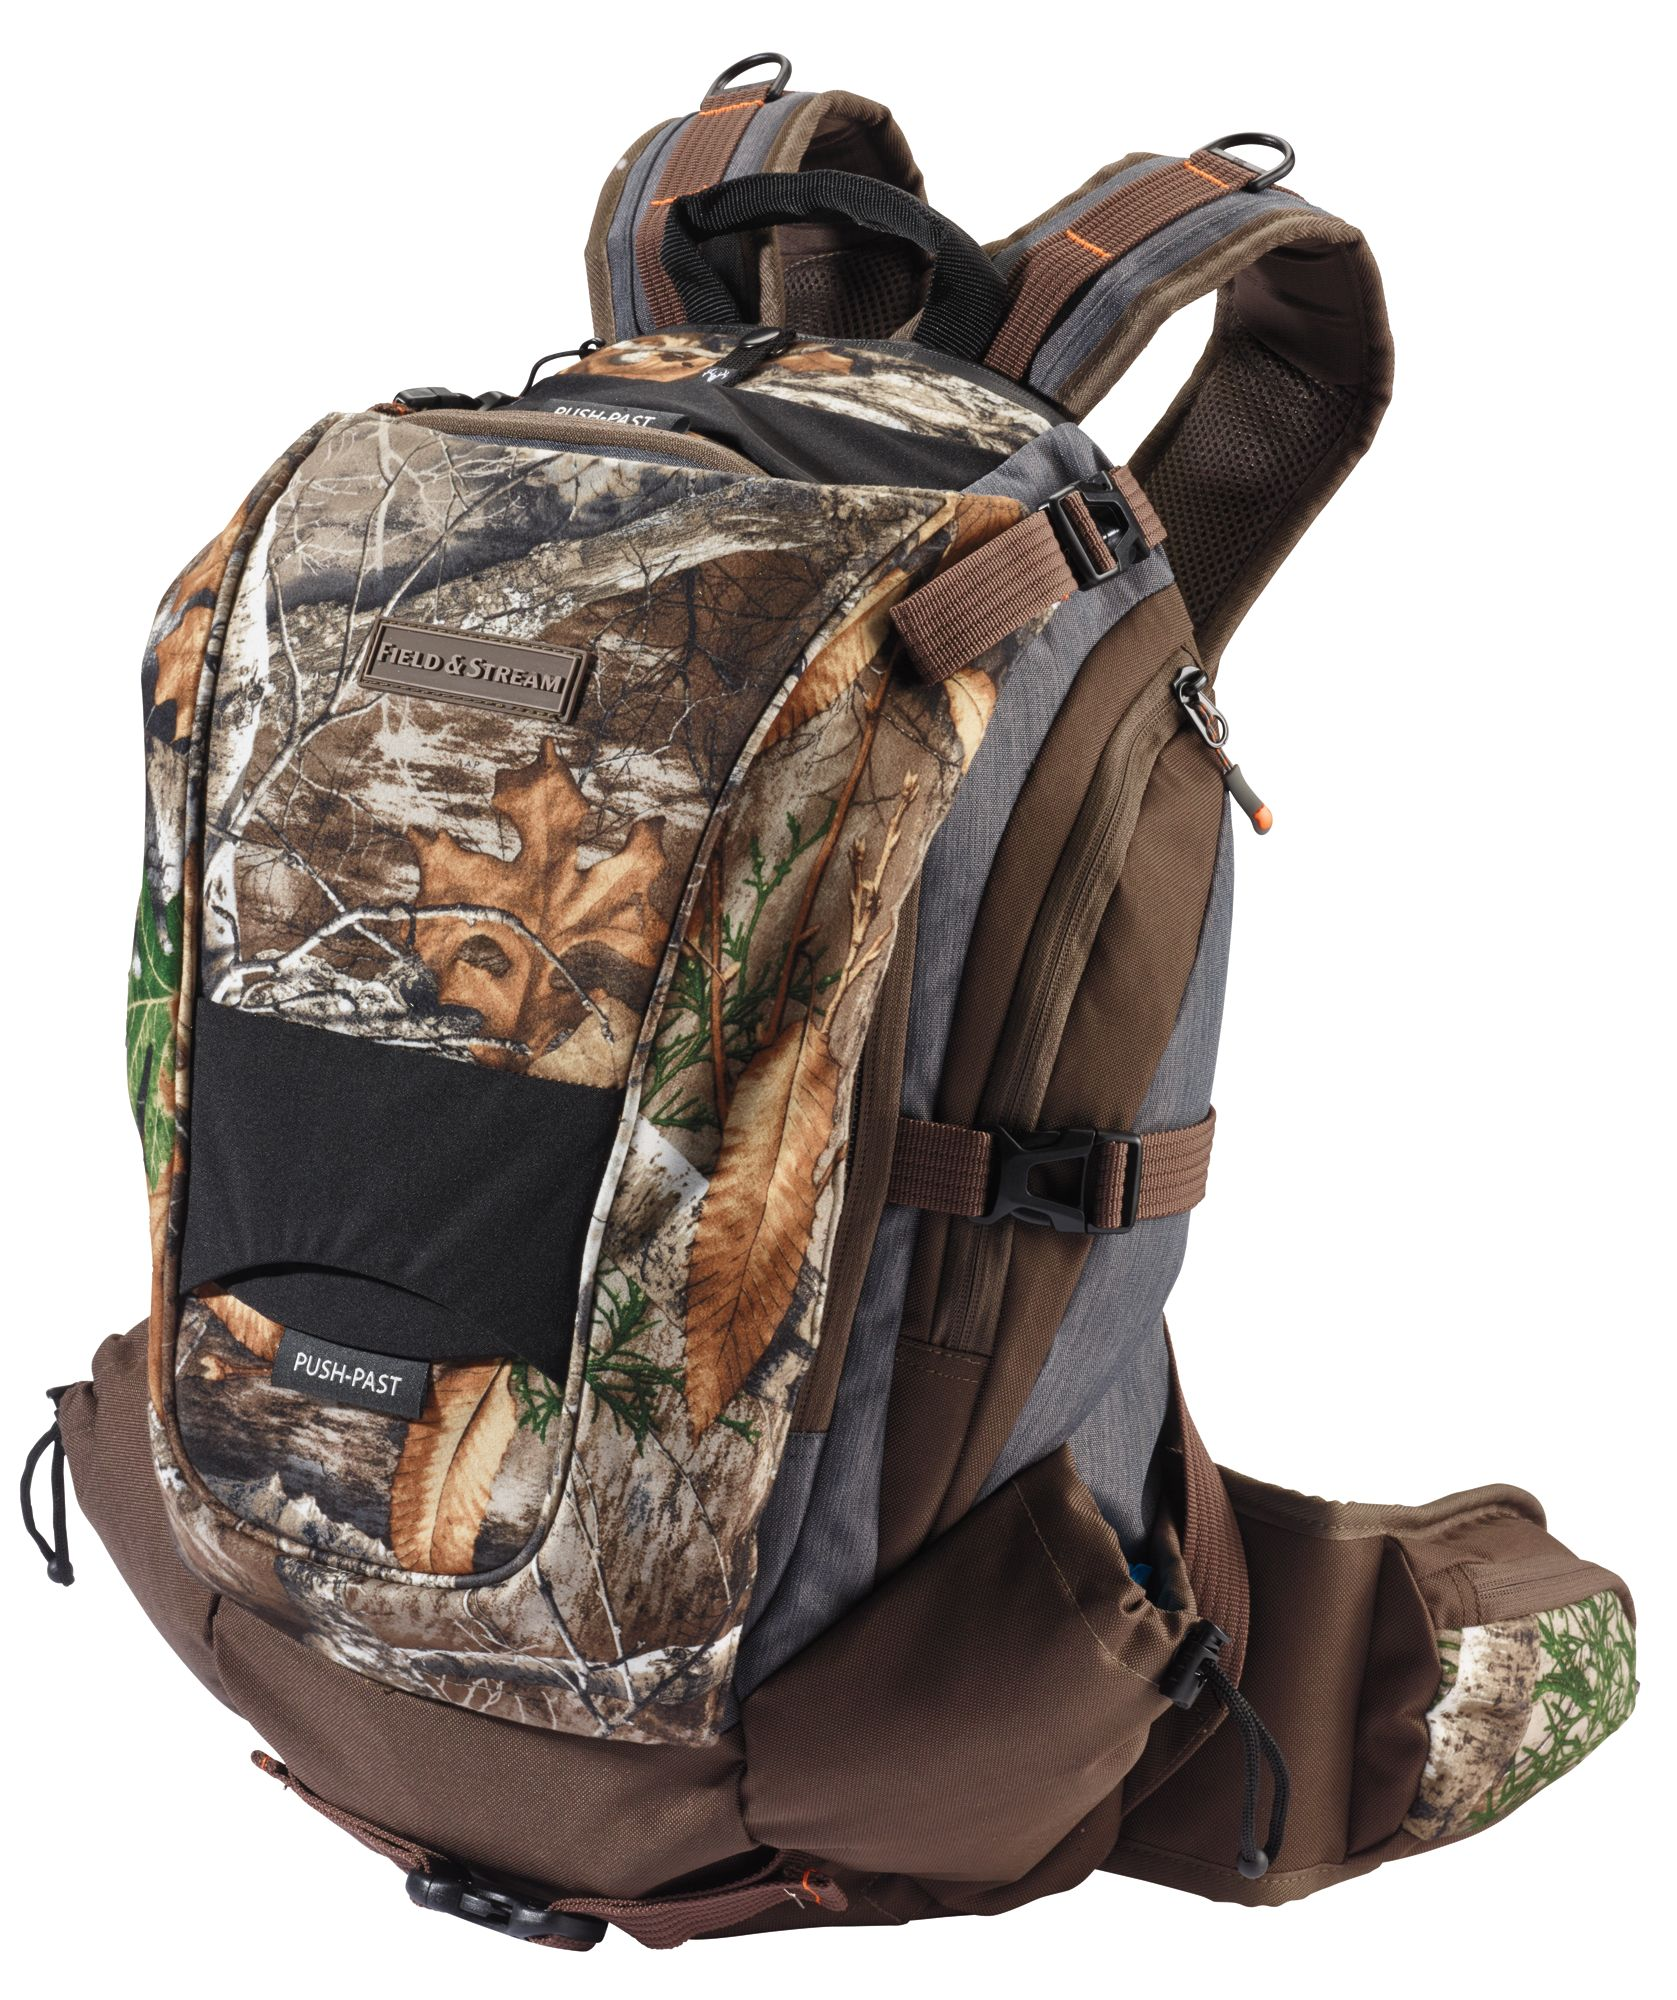 Field & Stream Ultimate Whitetail Hunting Pack, camo